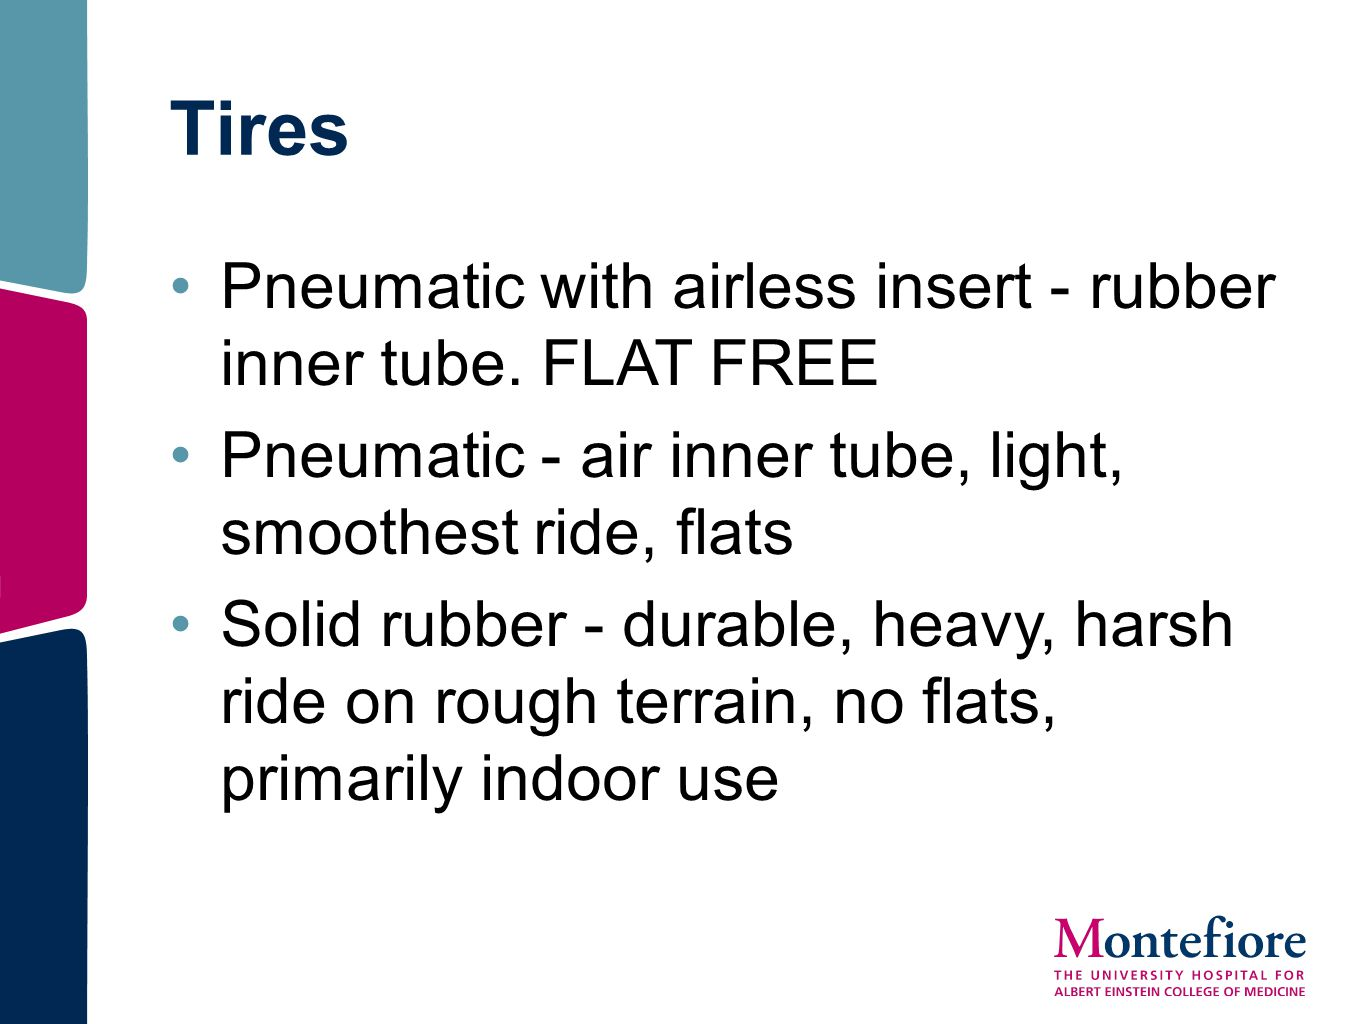 Tires Pneumatic with airless insert - rubber inner tube. FLAT FREE Pneumatic - air inner tube, light, smoothest ride, flats Solid rubber - durable, he